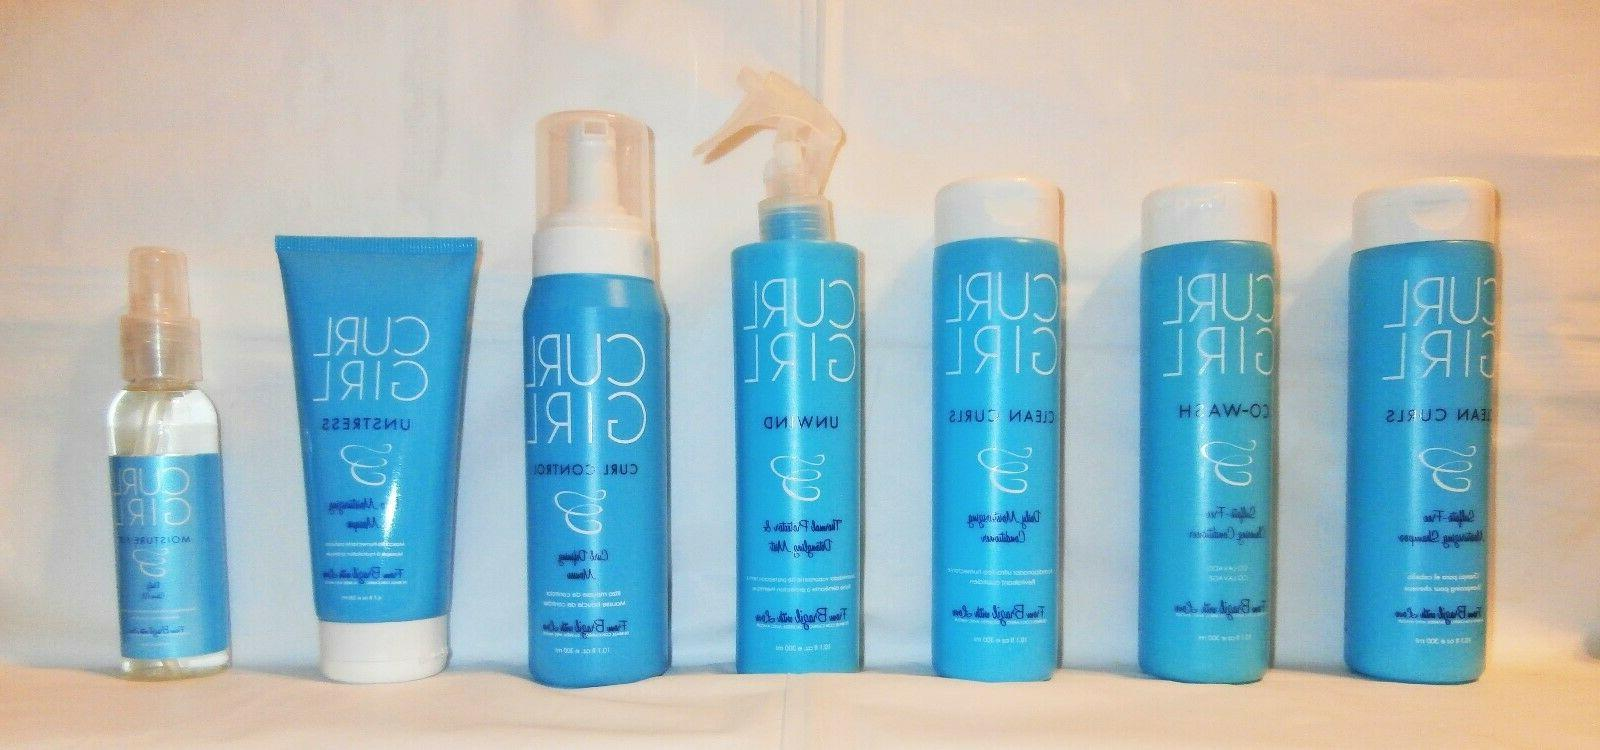 curl girl hair care styling products 1